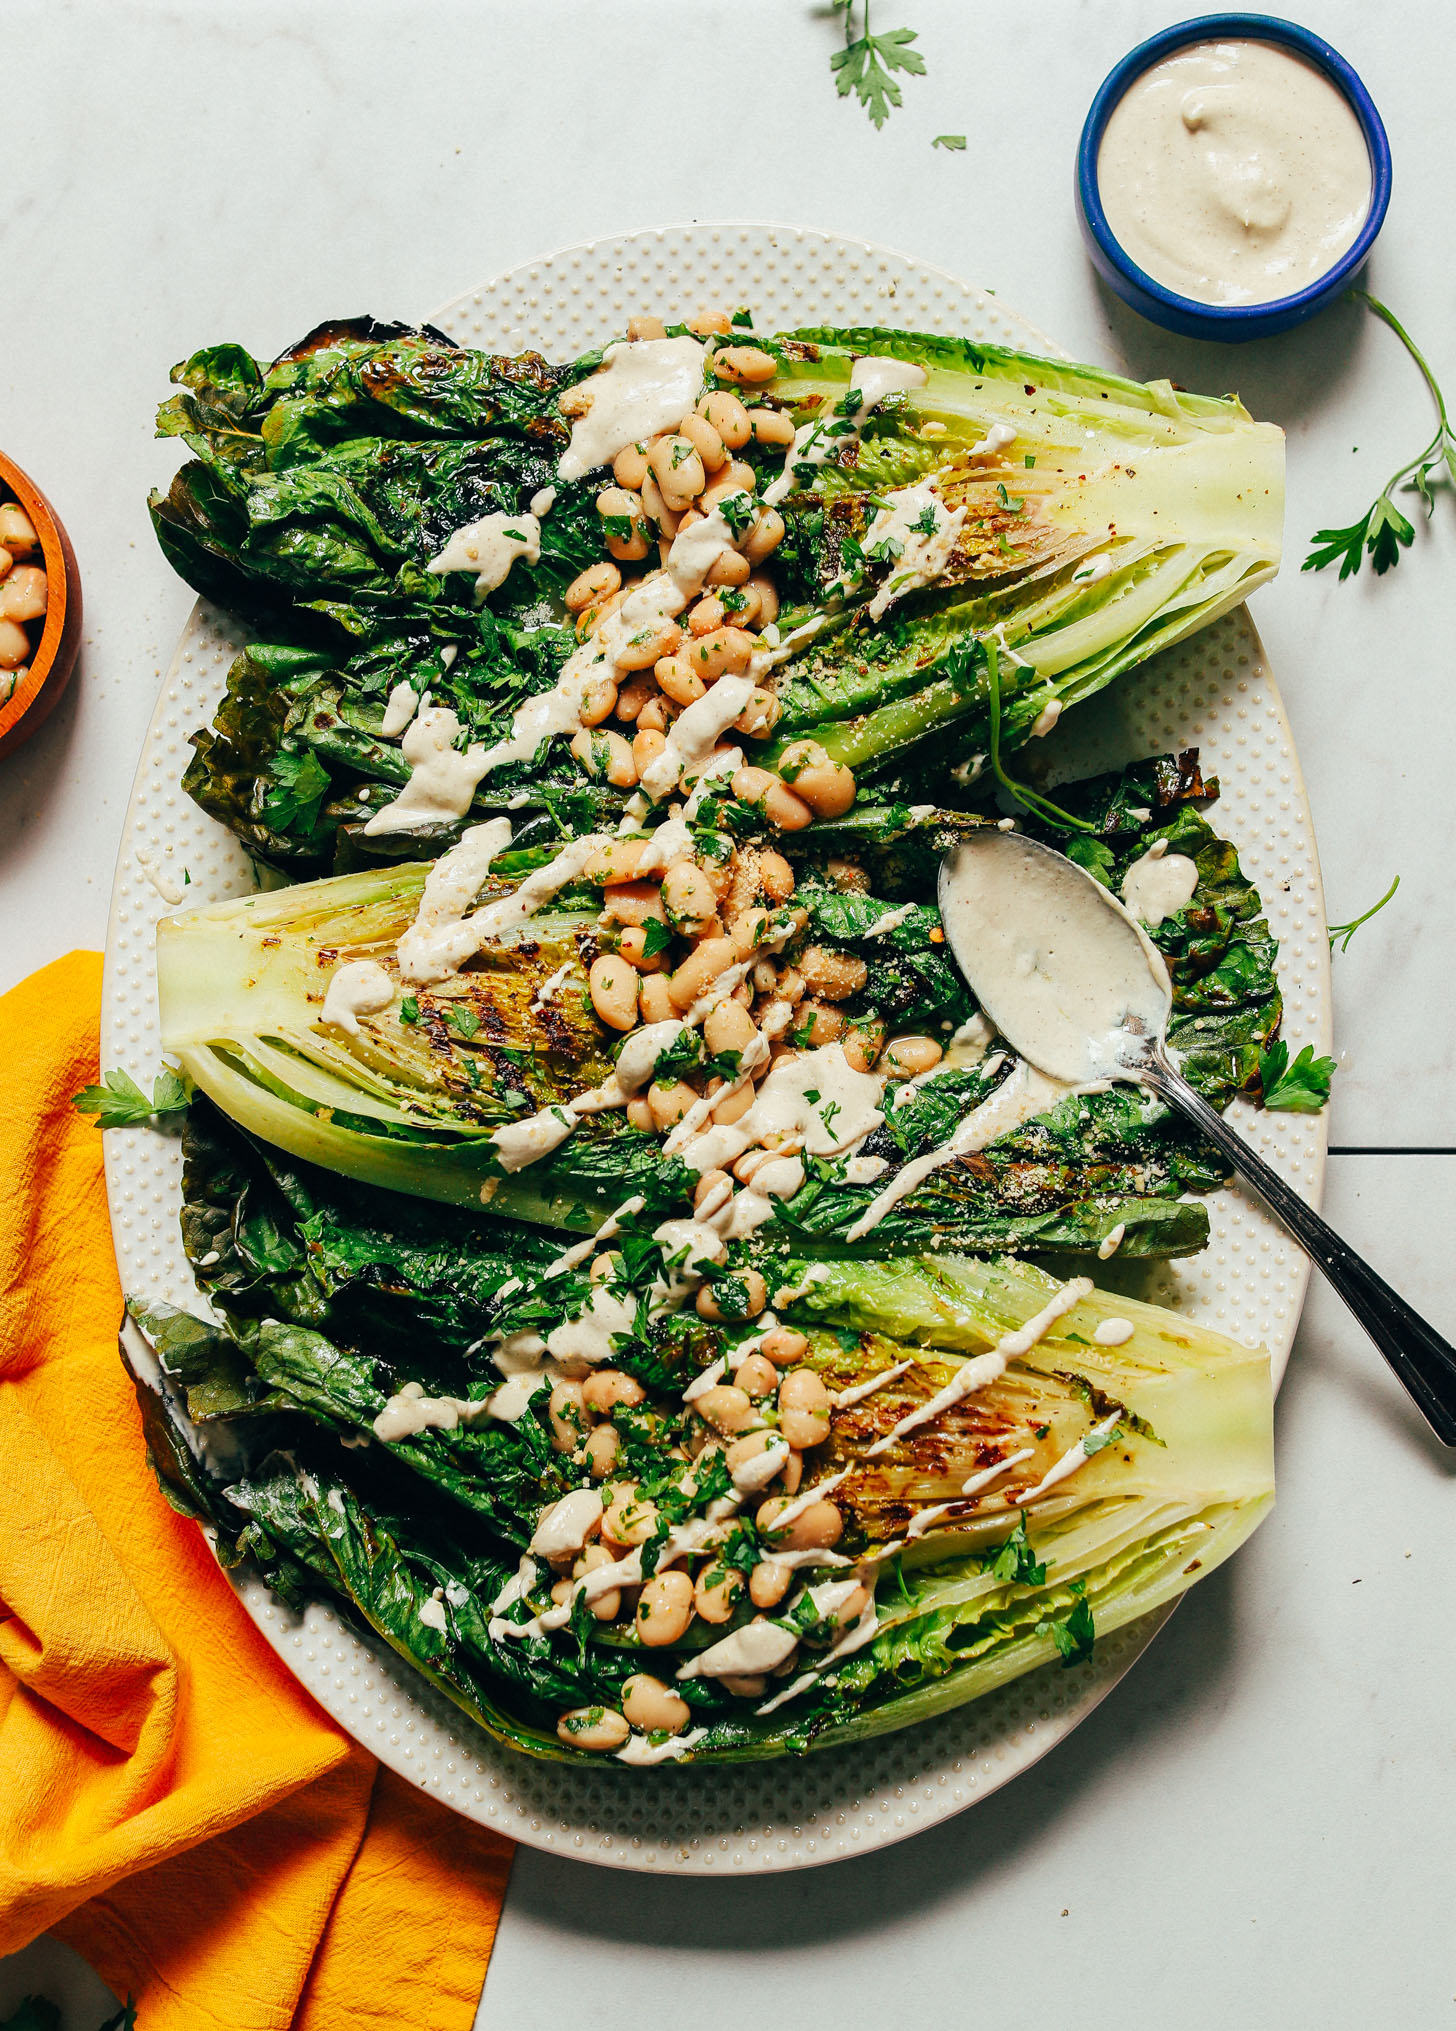 Platter of broiled romaine topped with Herbed Beans and drizzled with Vegan Caesar Dressing